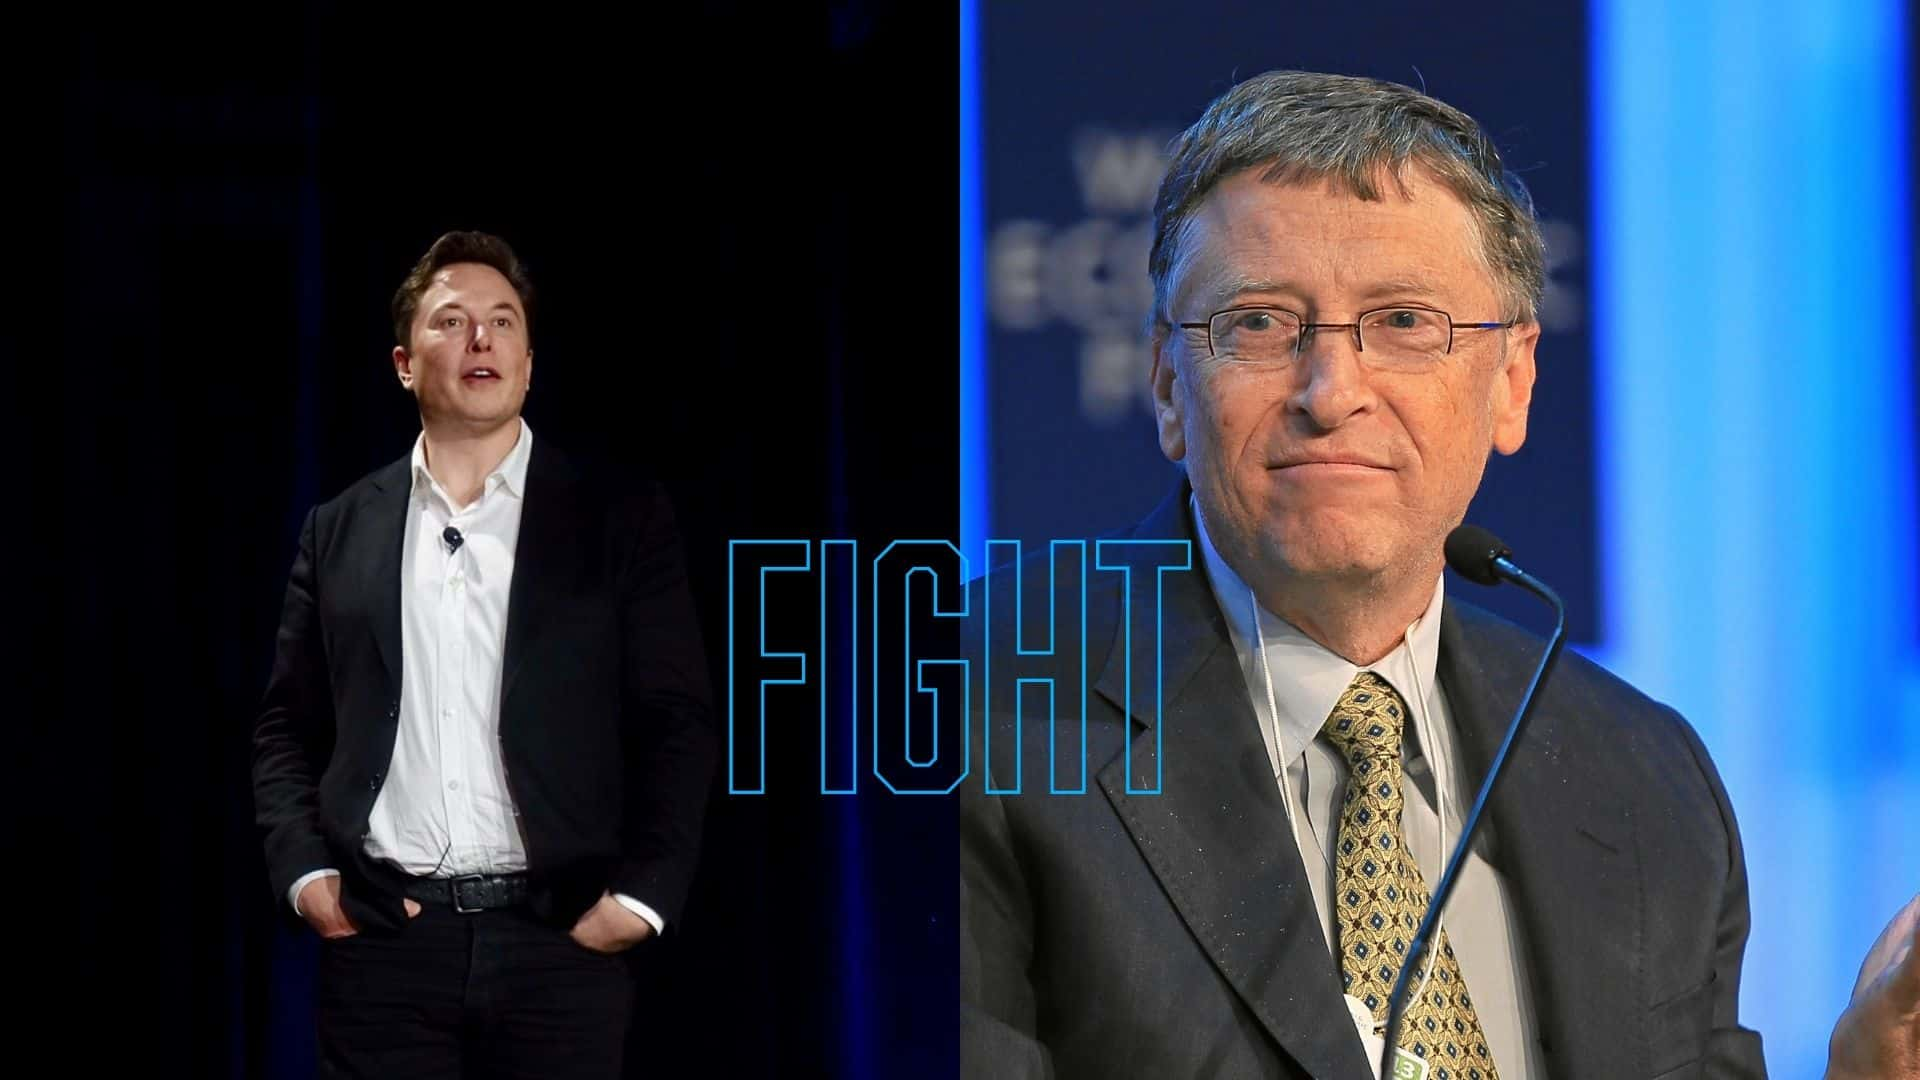 Elon Musk vs Bill gates